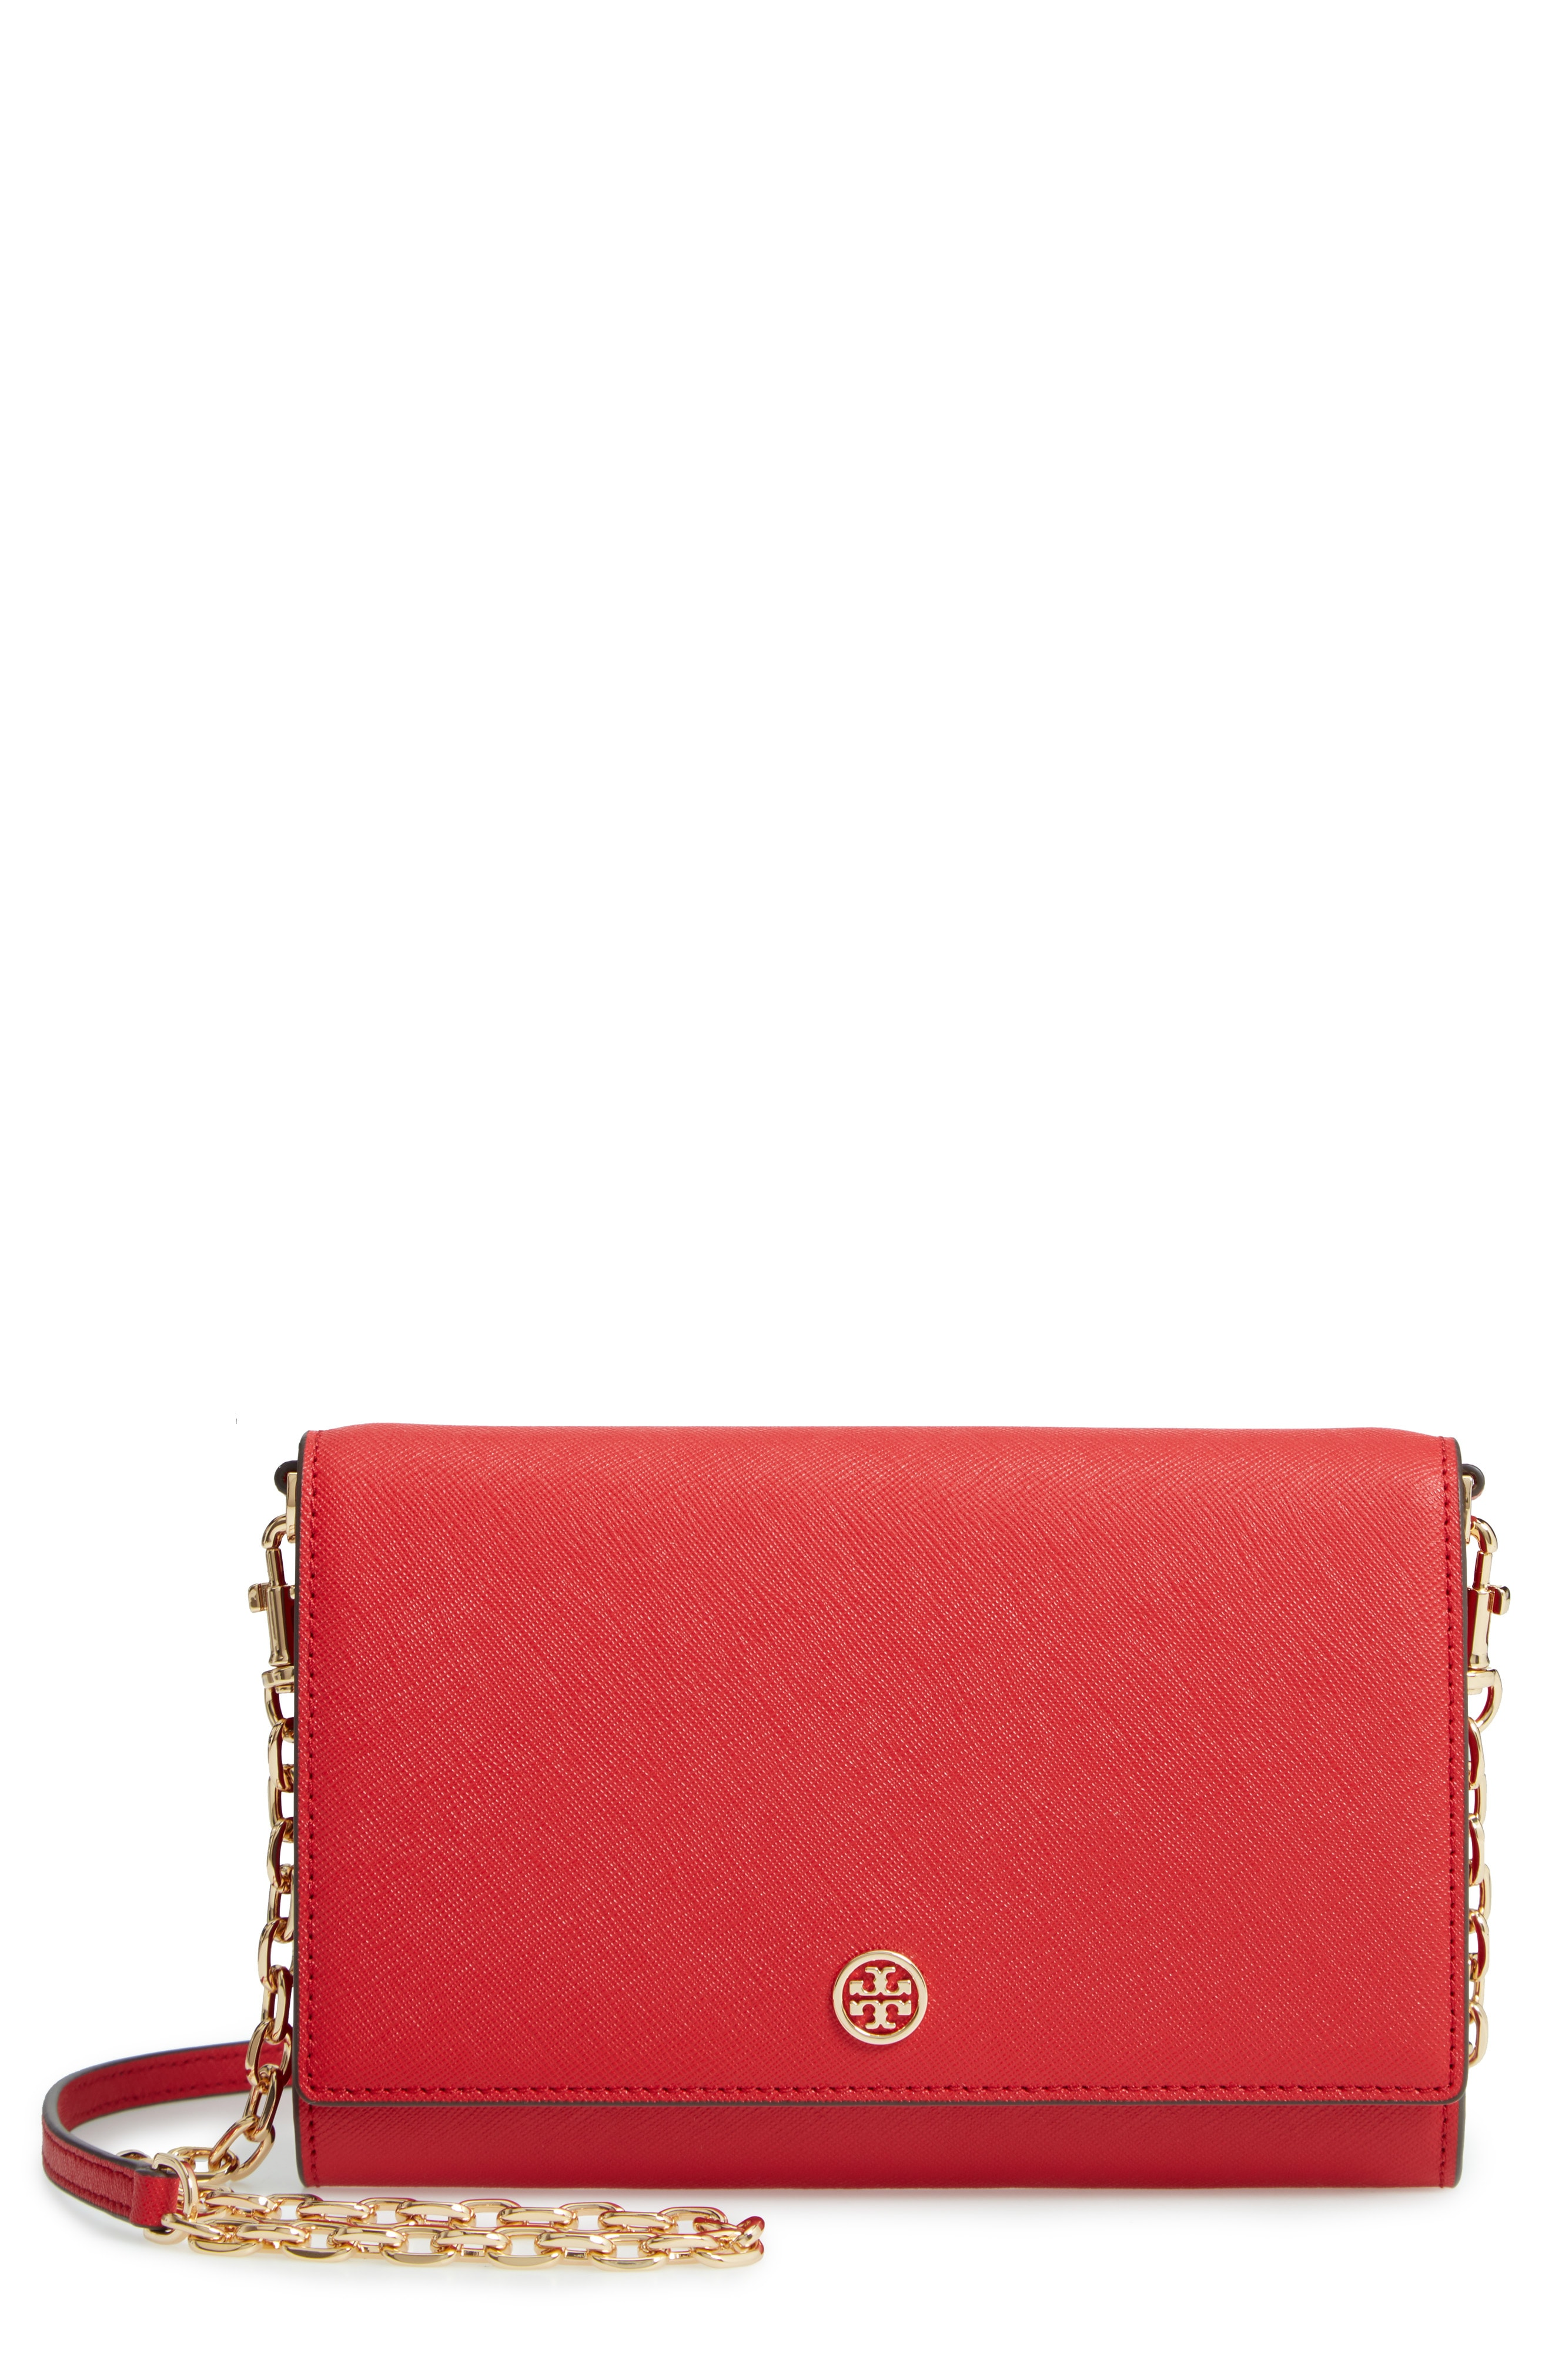 Tory Burch Robinson Leather Wallet on a Chain